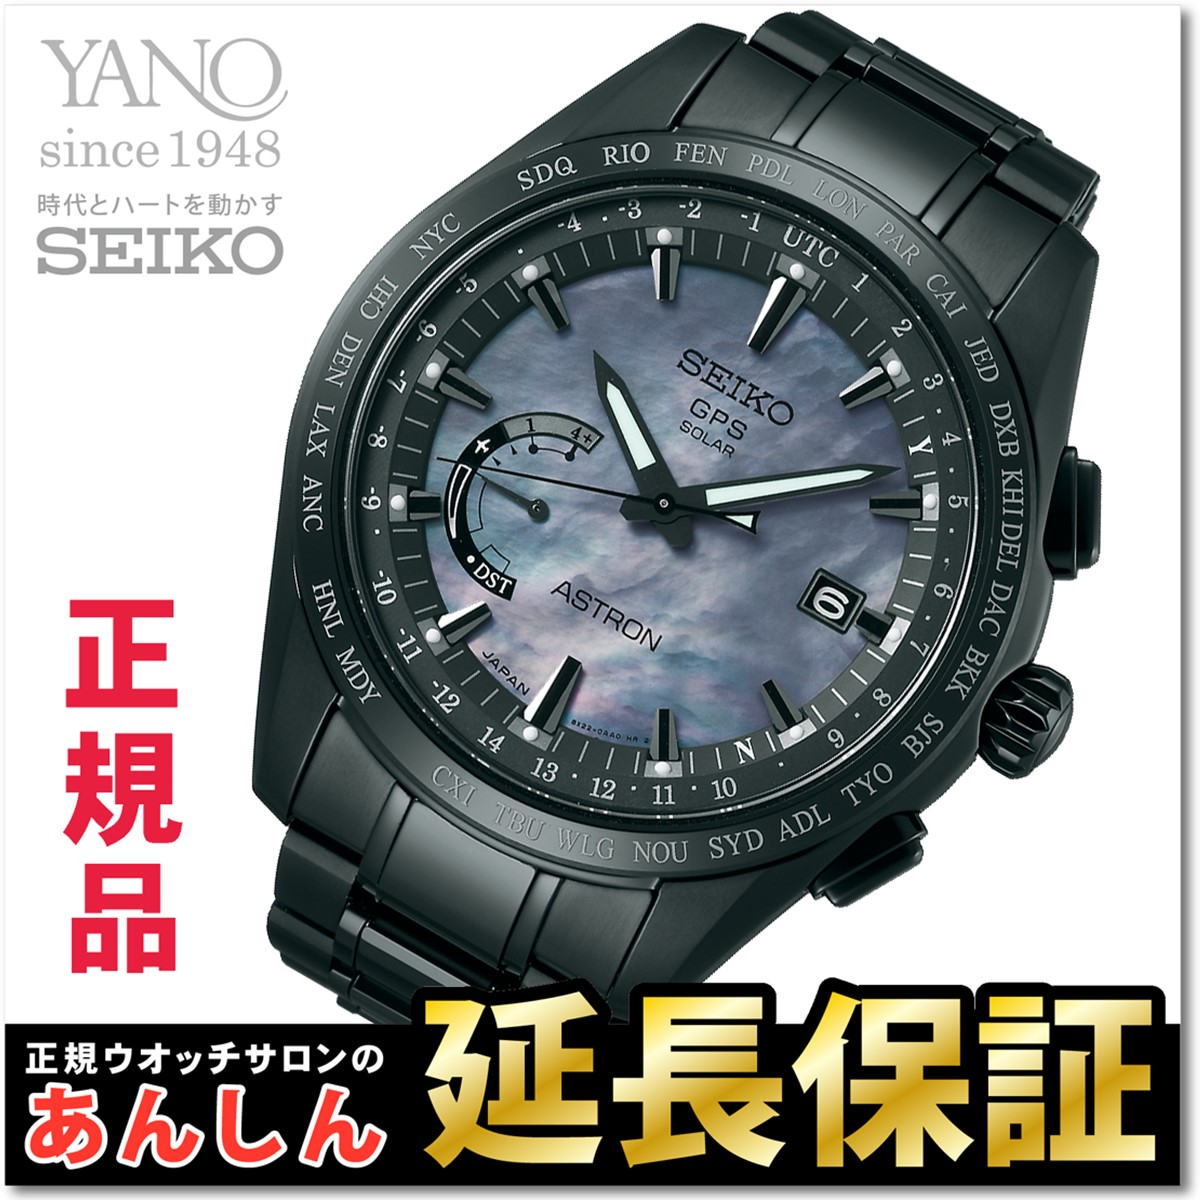 Seiko Astron Seiko Astron Sbxb091 Black 2016 Limited Model Gps Solar Watch Gps Satellite Radio Watch Seiko Astron 10 Spl 05p28sep16